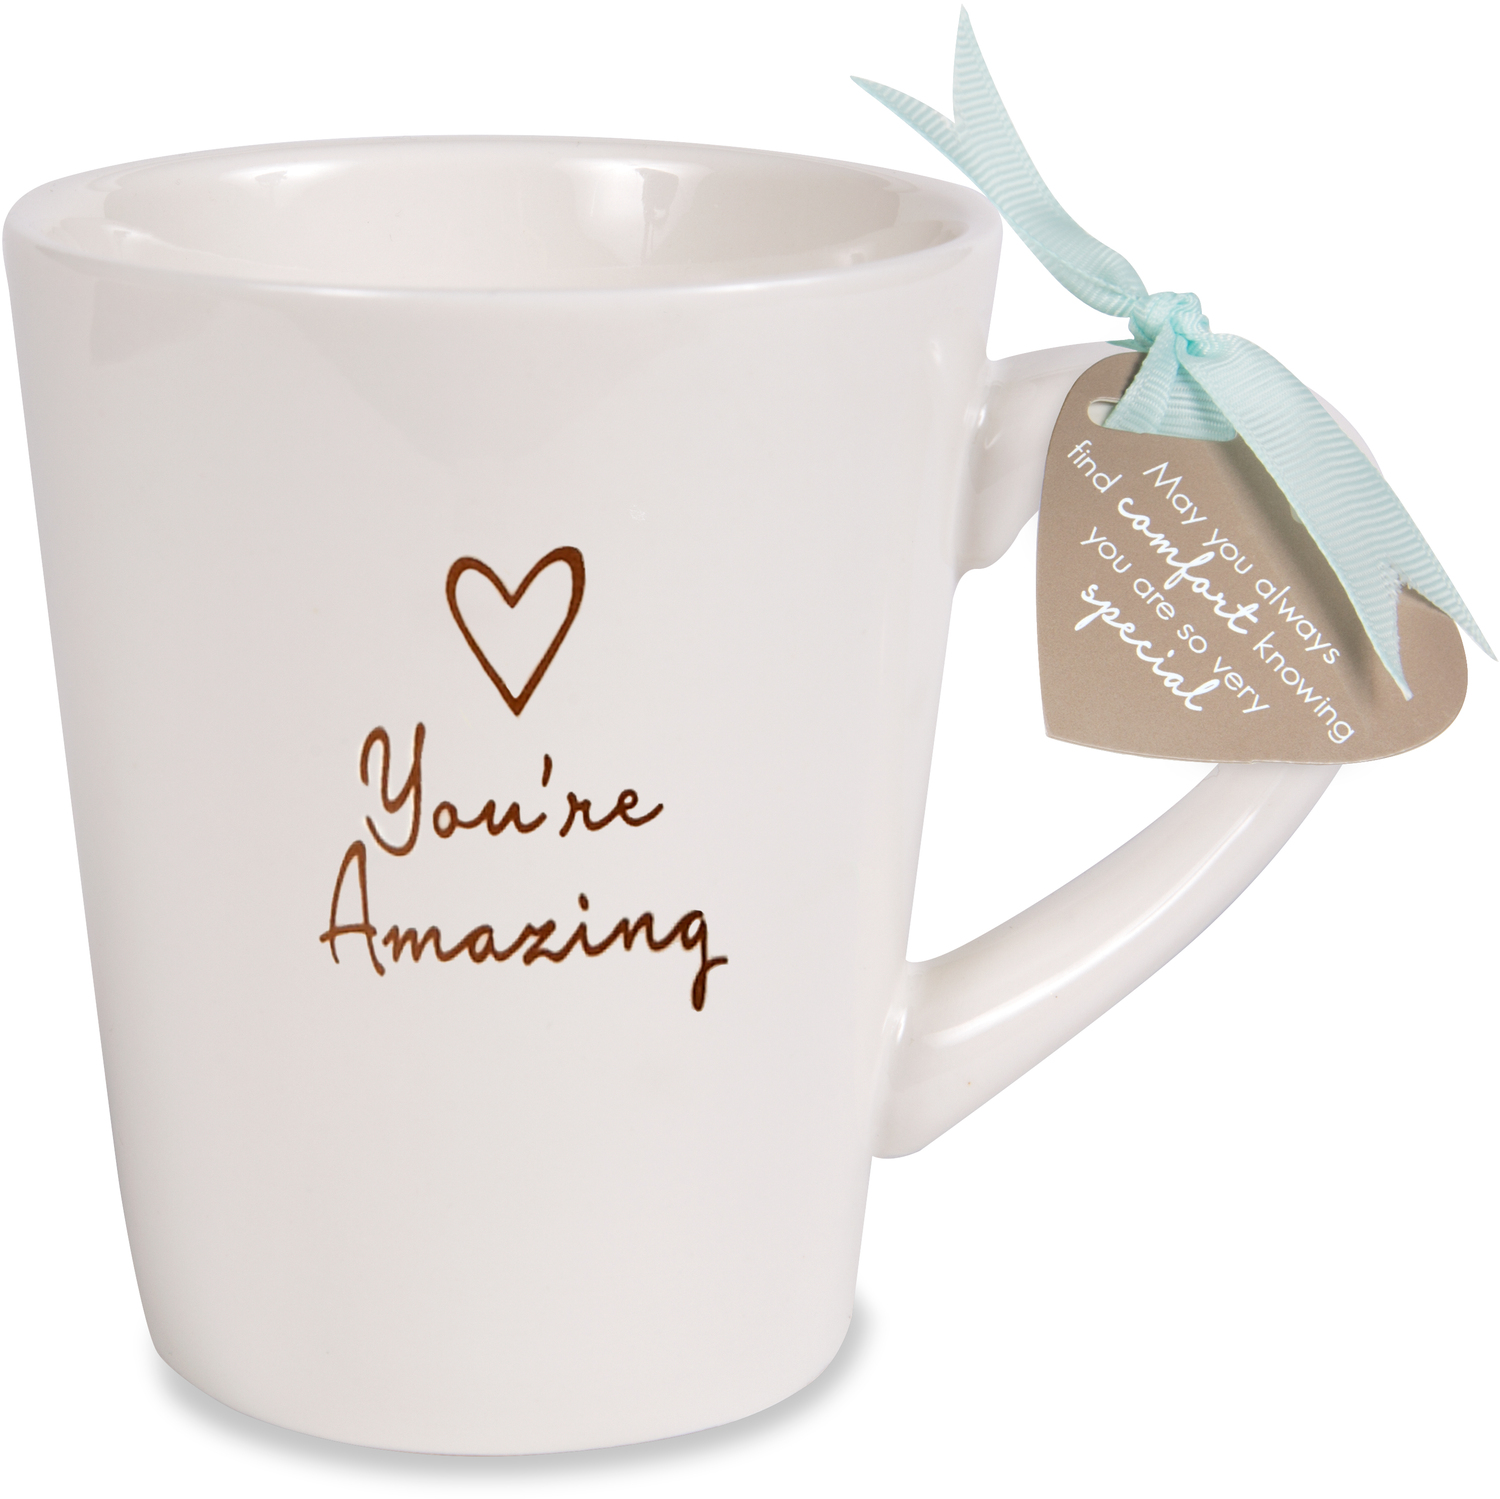 You're Amazing by Comfort Collection - You're Amazing - 15 oz Cup